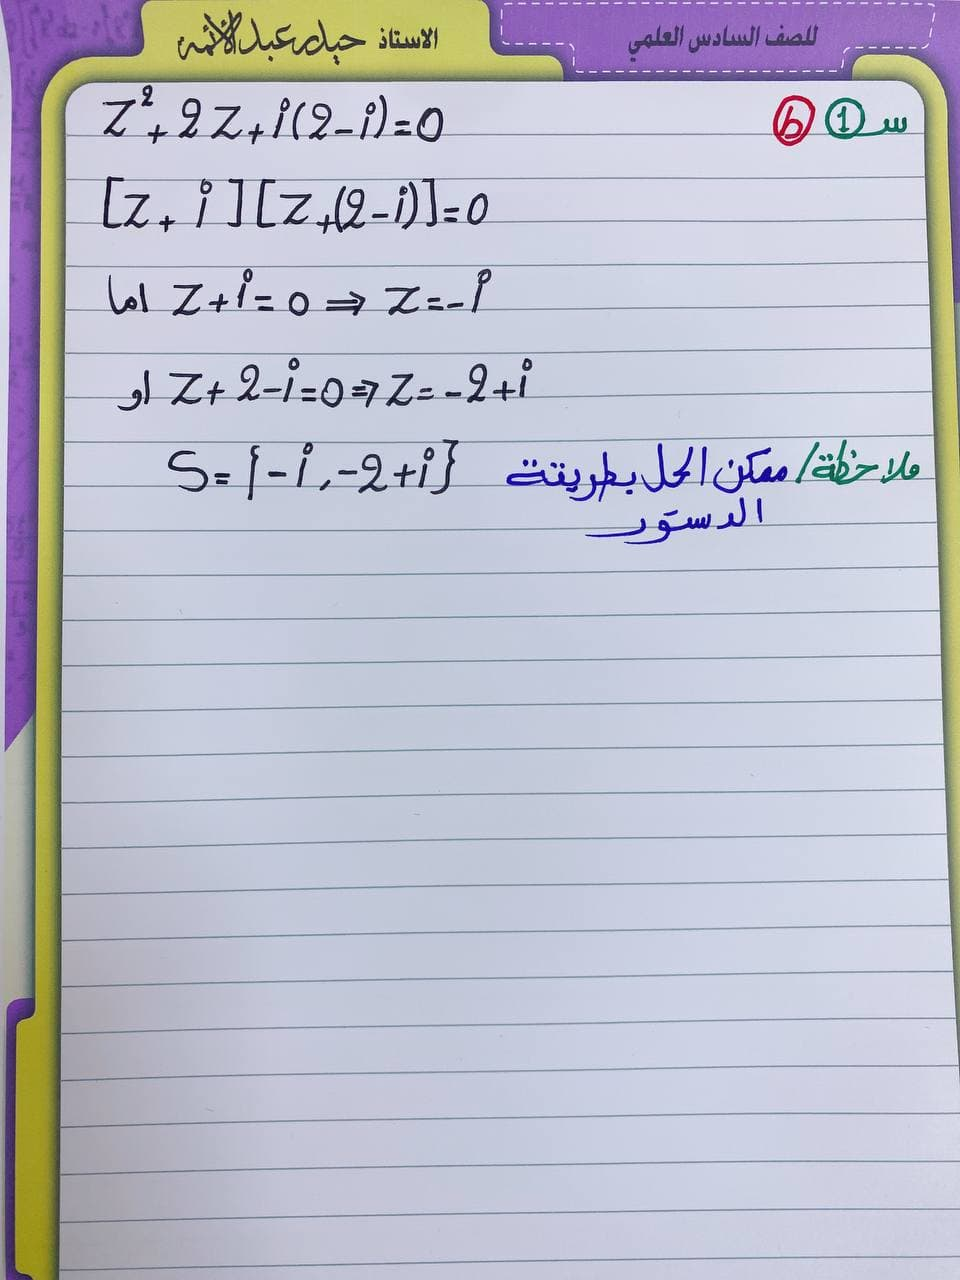 Solve math questions for sixth grade biology, first floor 2021